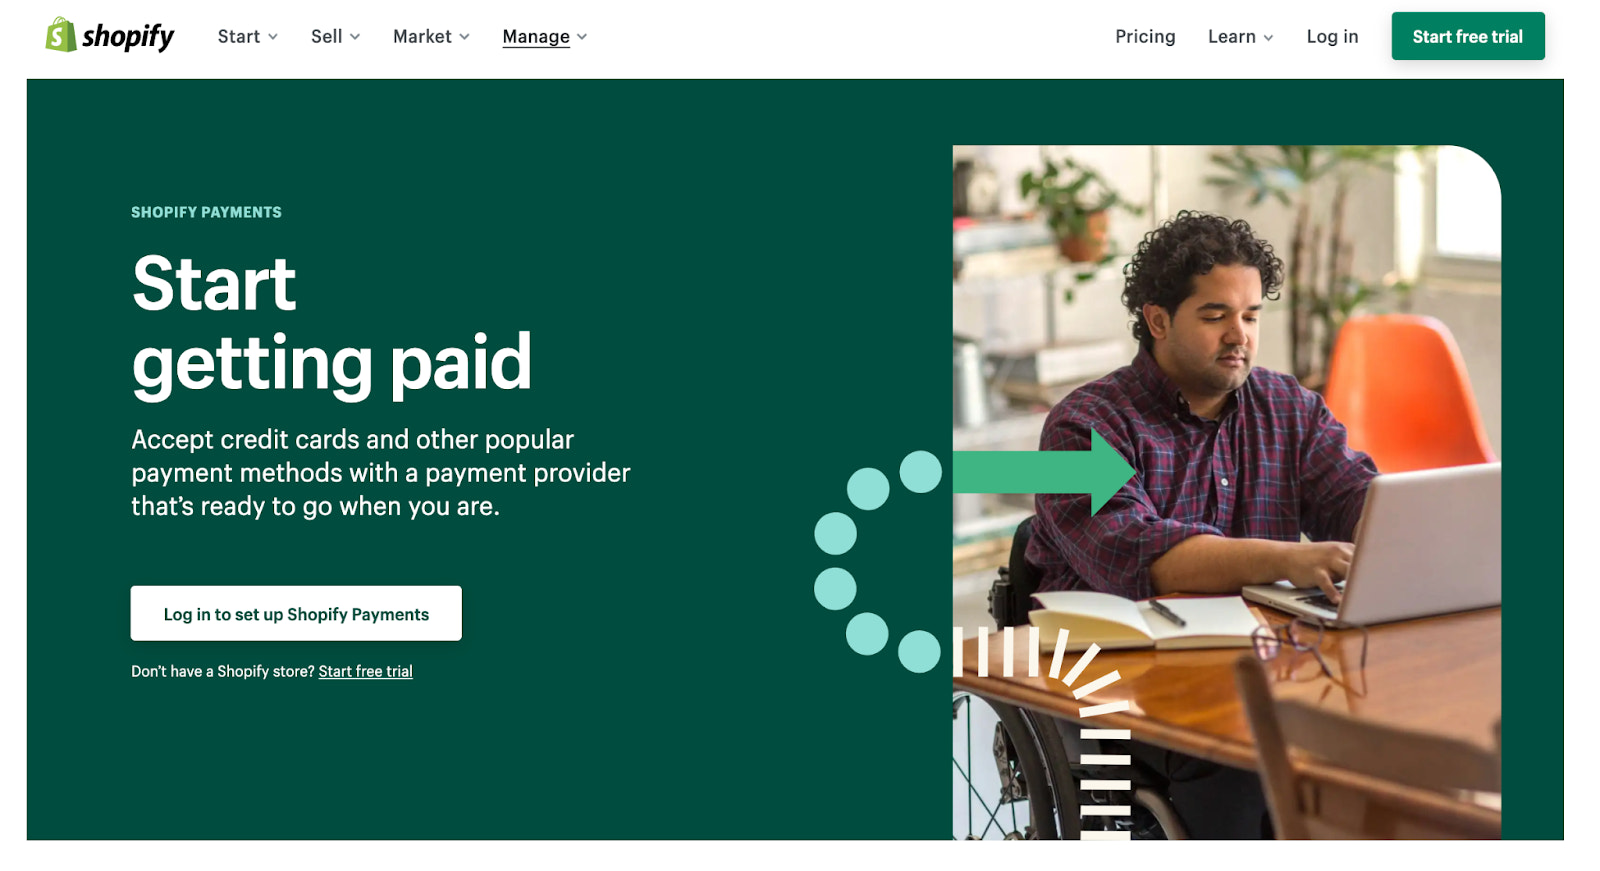 Shop Pay landing page